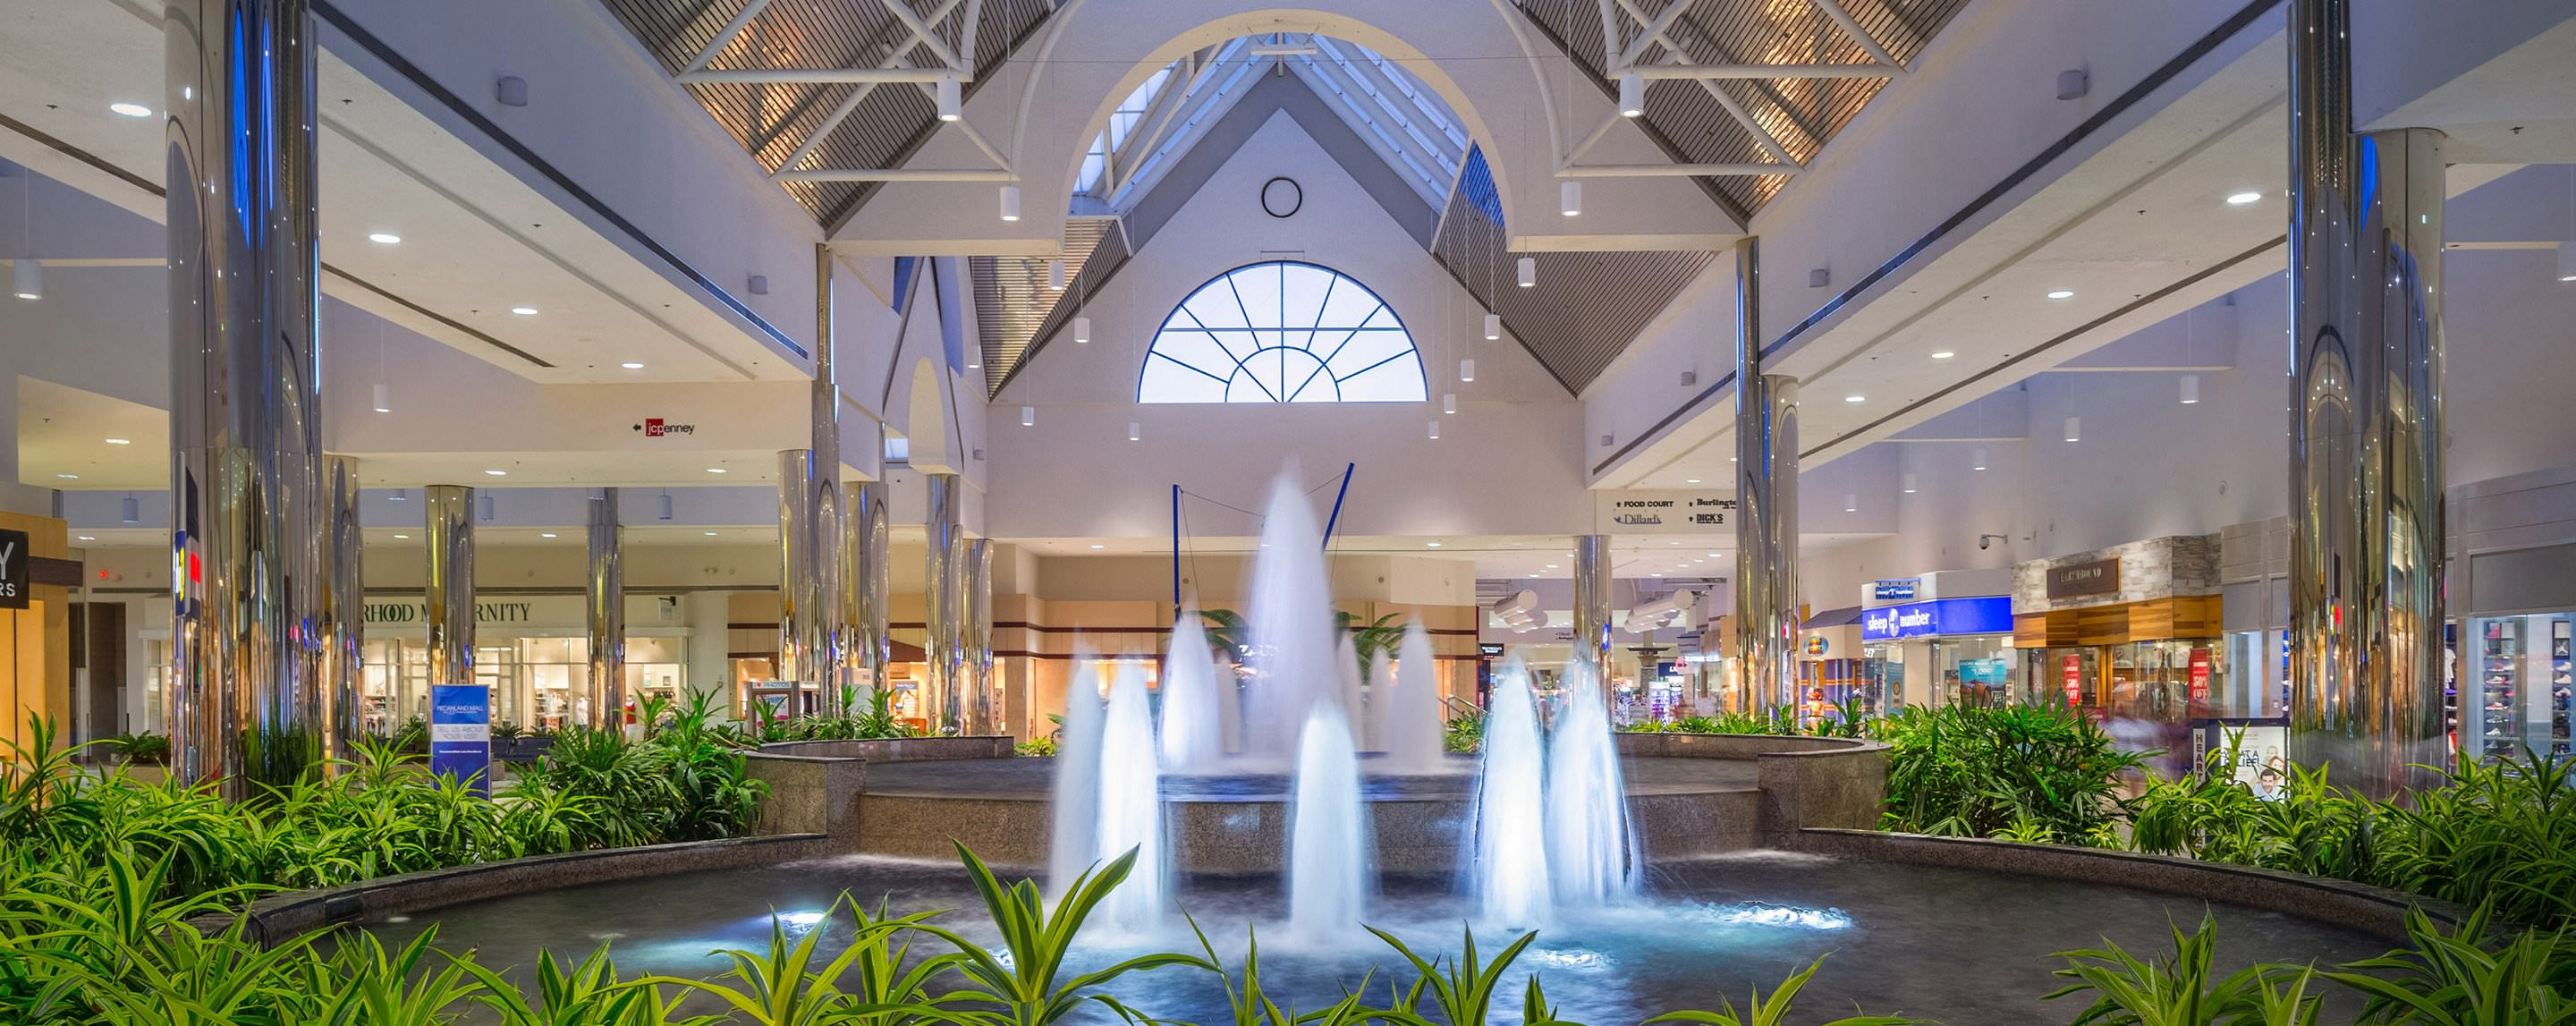 Inside of Pecanland Mall's atrium, a running fountain surrounded by plants is centered in the atrium.